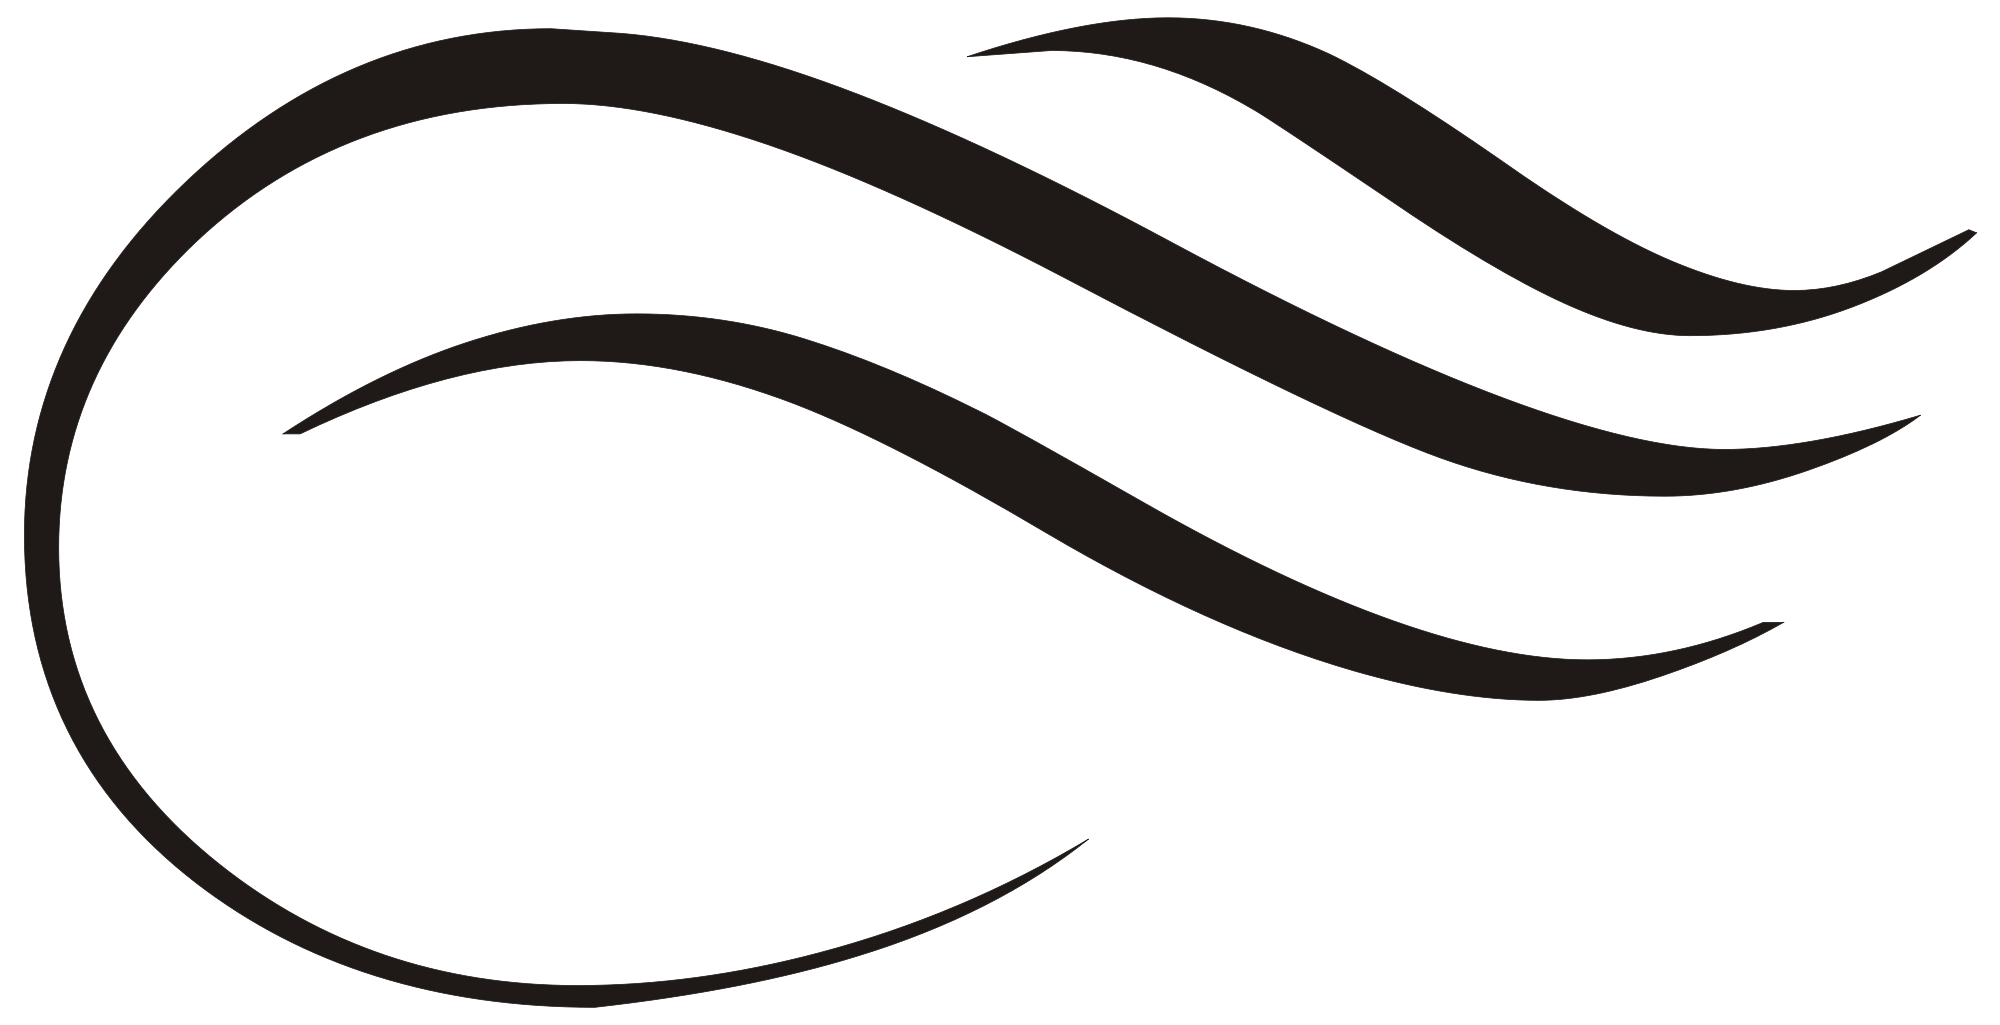 Wavy Line Drawing   Free download on ClipArtMag